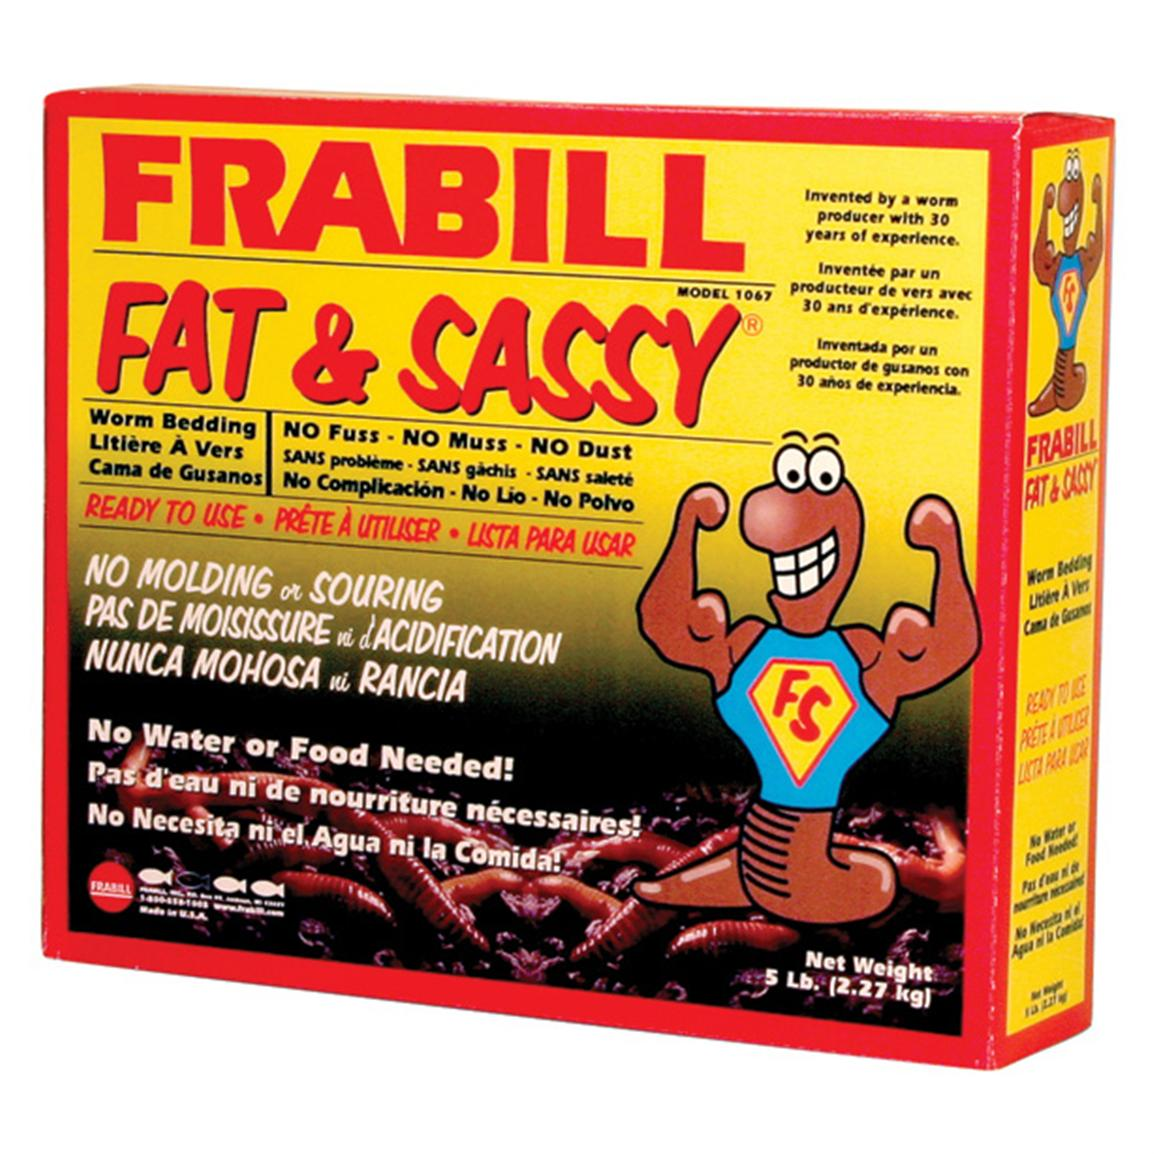 Frabill 1067 Fat N Sassy Pre-mixed Worm Bedding, 5 lbs.